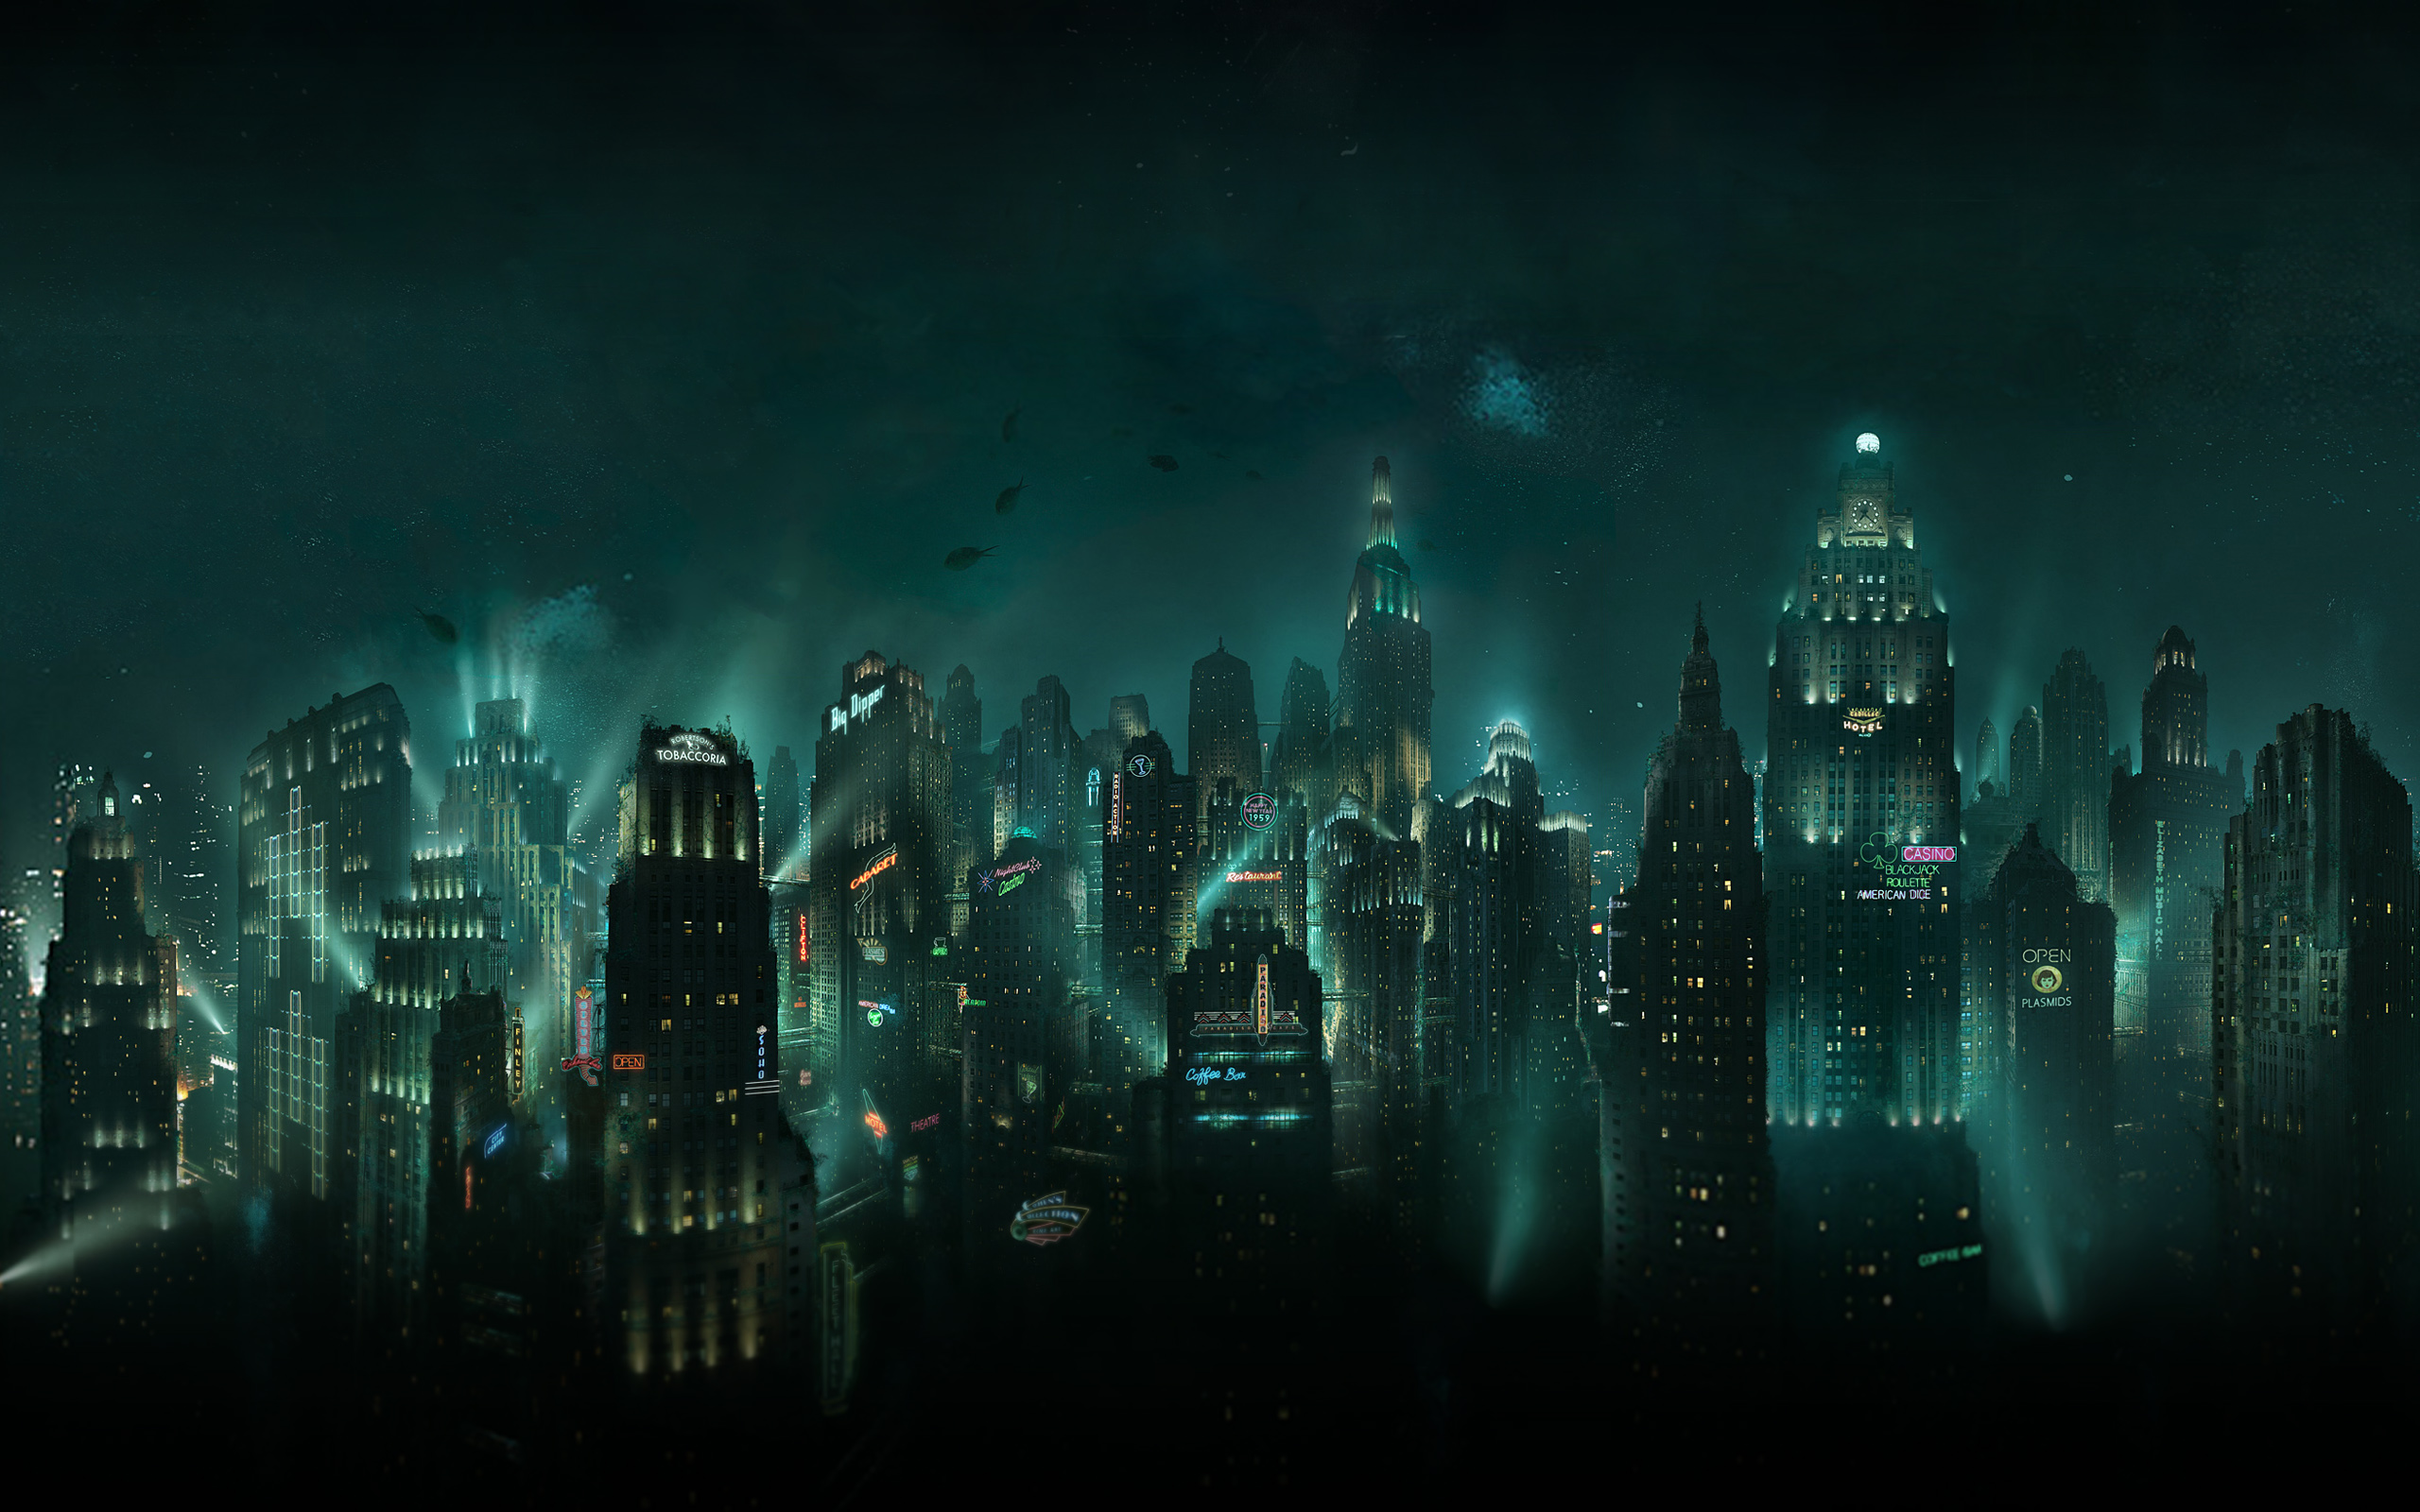 bioshock rapture wallpaper A3